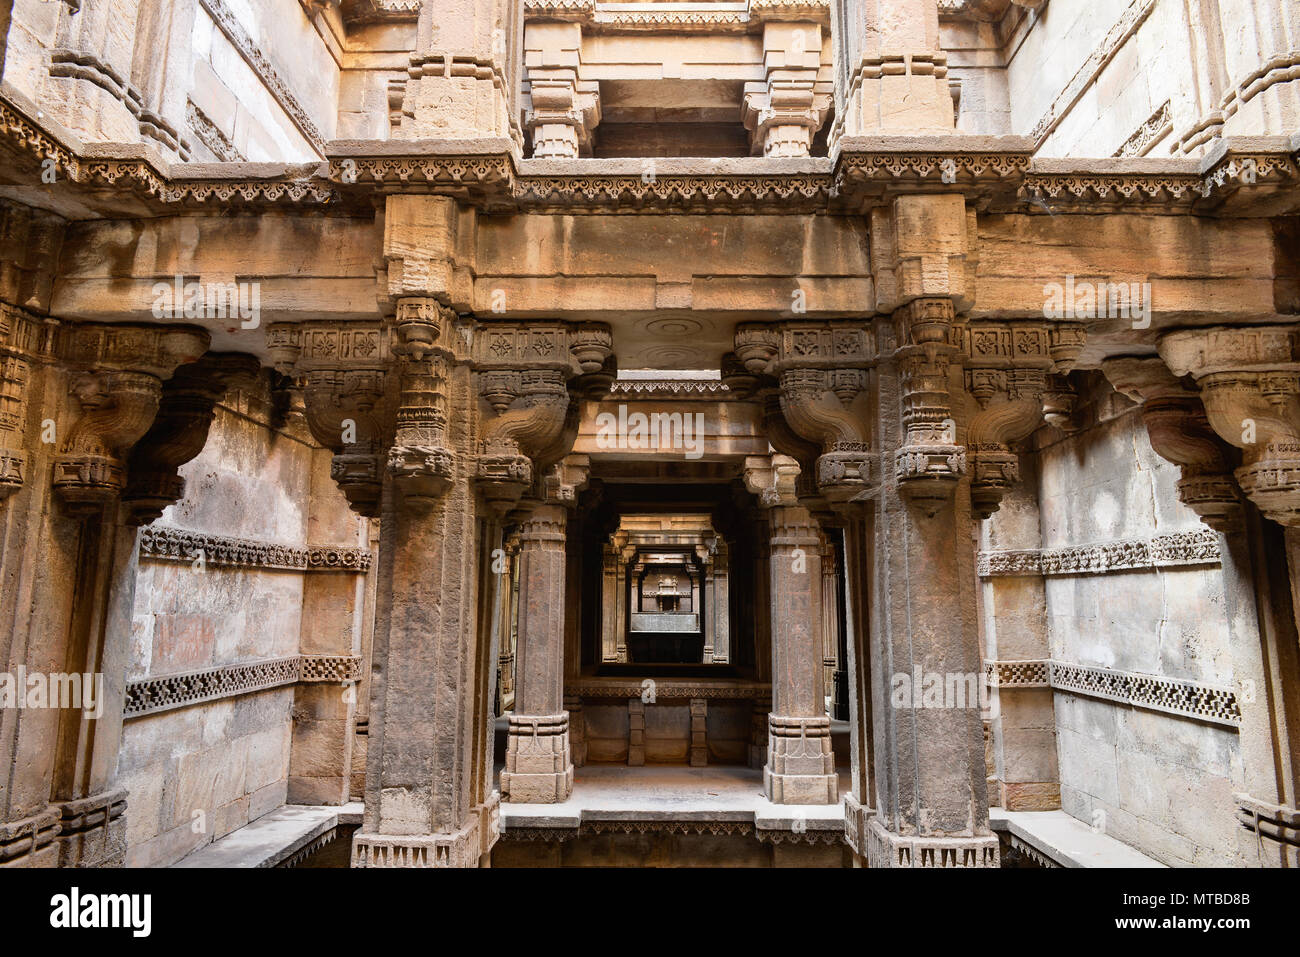 Dada Hari ni Vav stepwell is a Hindu water building in the village of Adalaj, close to Ahmedabad town in the Indian state of Gujarat. - Stock Image